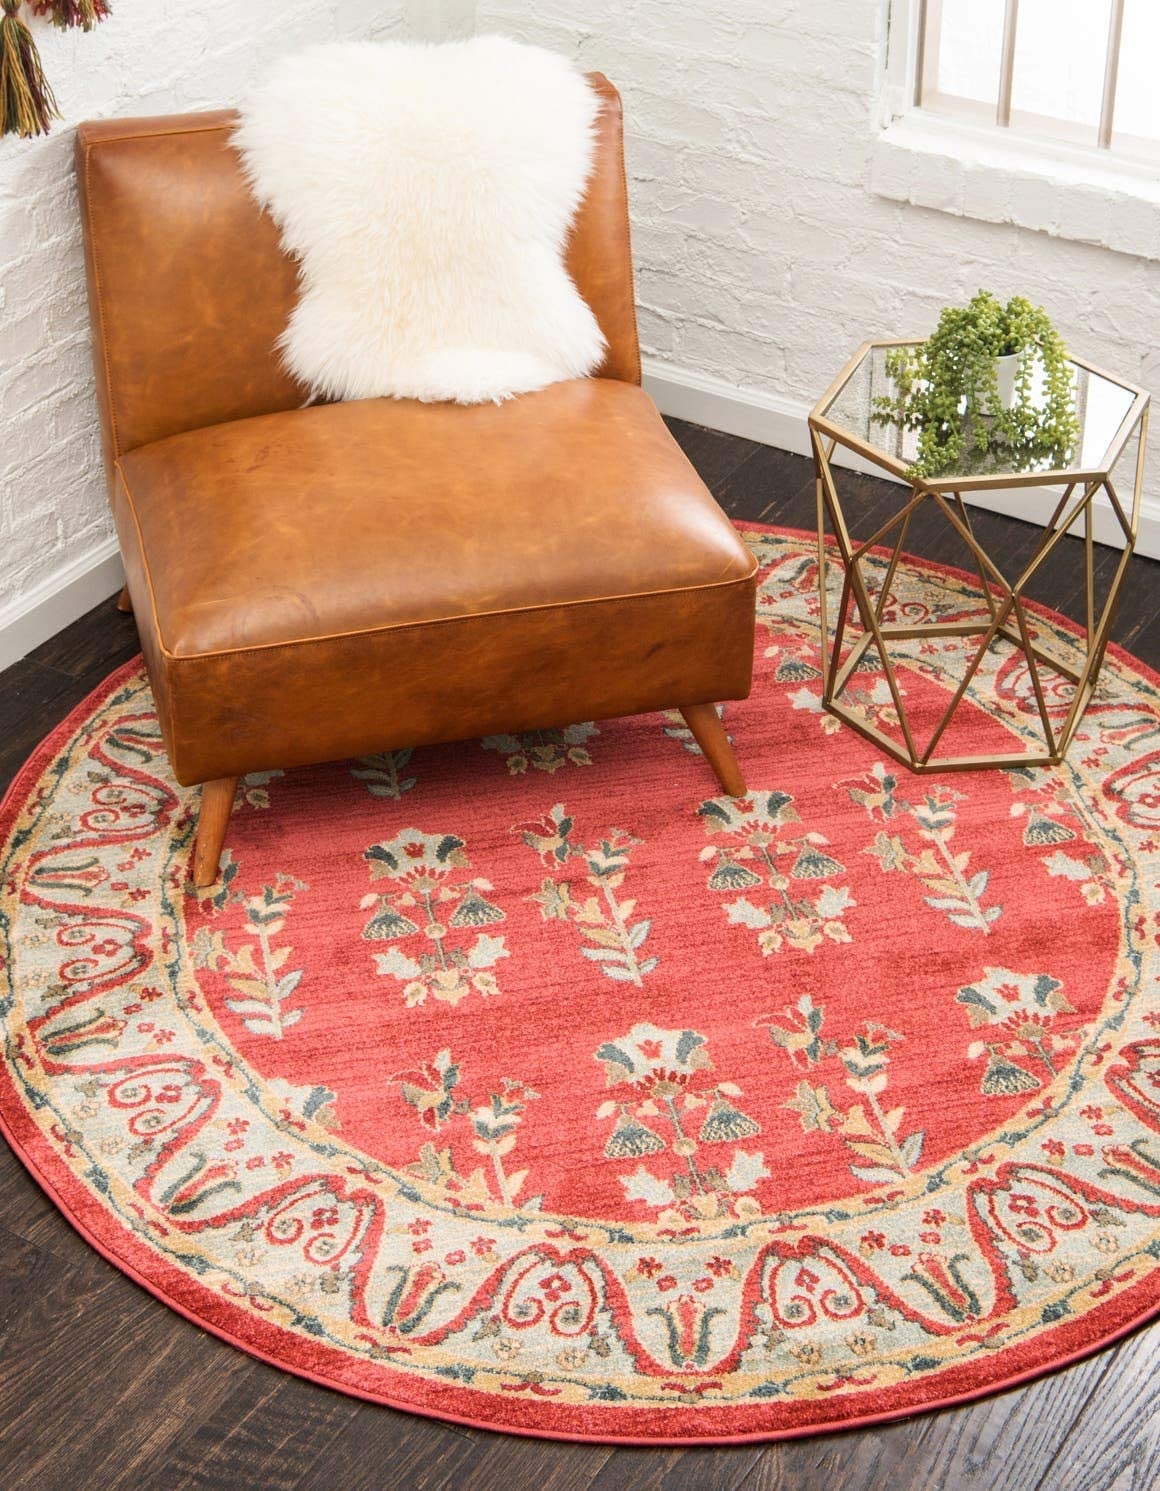 Unique Loom Fars Collection Tribal Modern Casual Red Round Rug 6 0 x 6 0